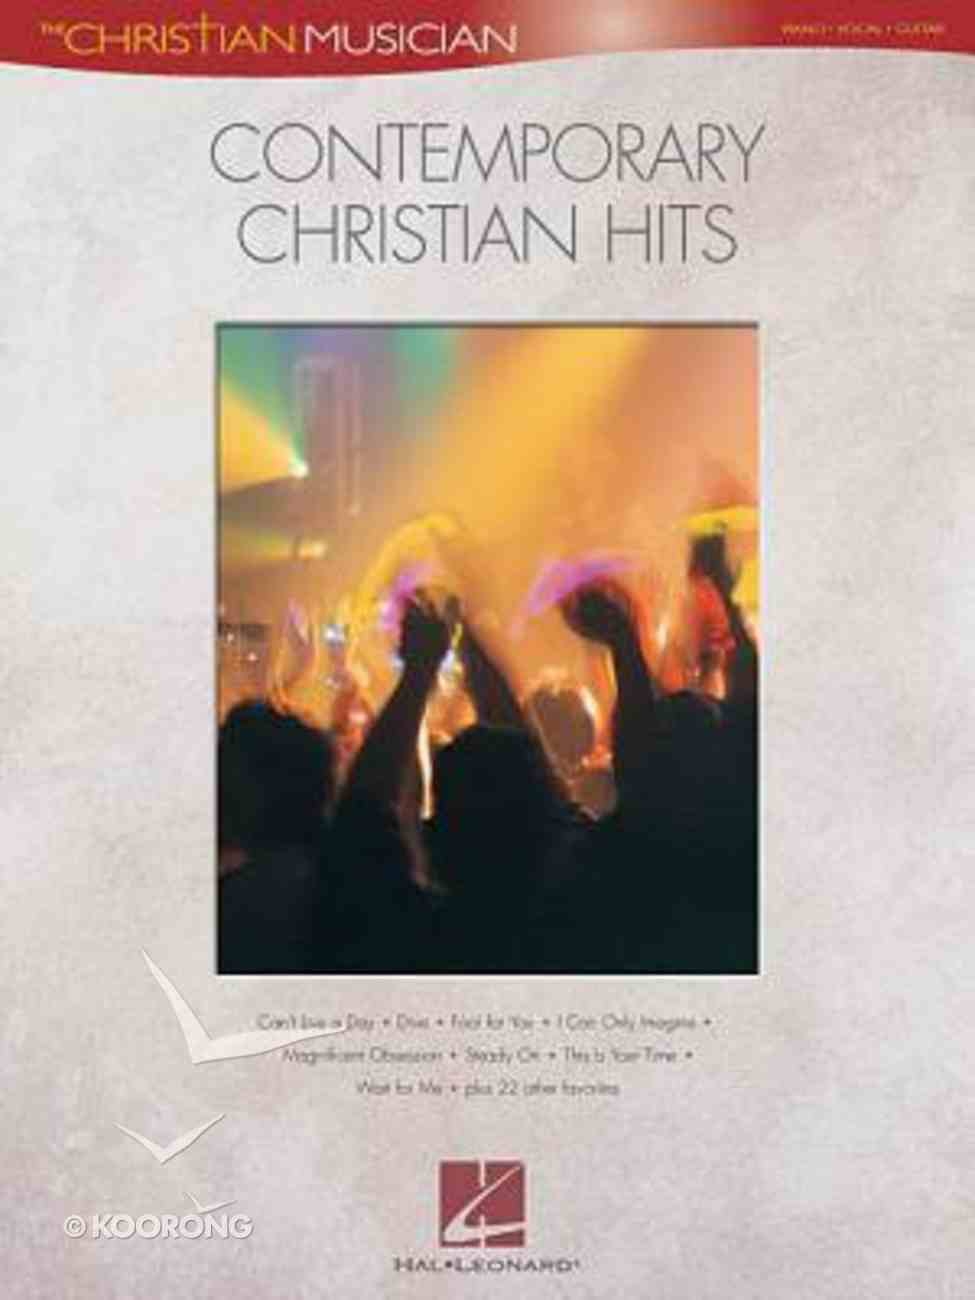 Contemporary Christian Hits (Music Book) (Christian Musician Series) Paperback